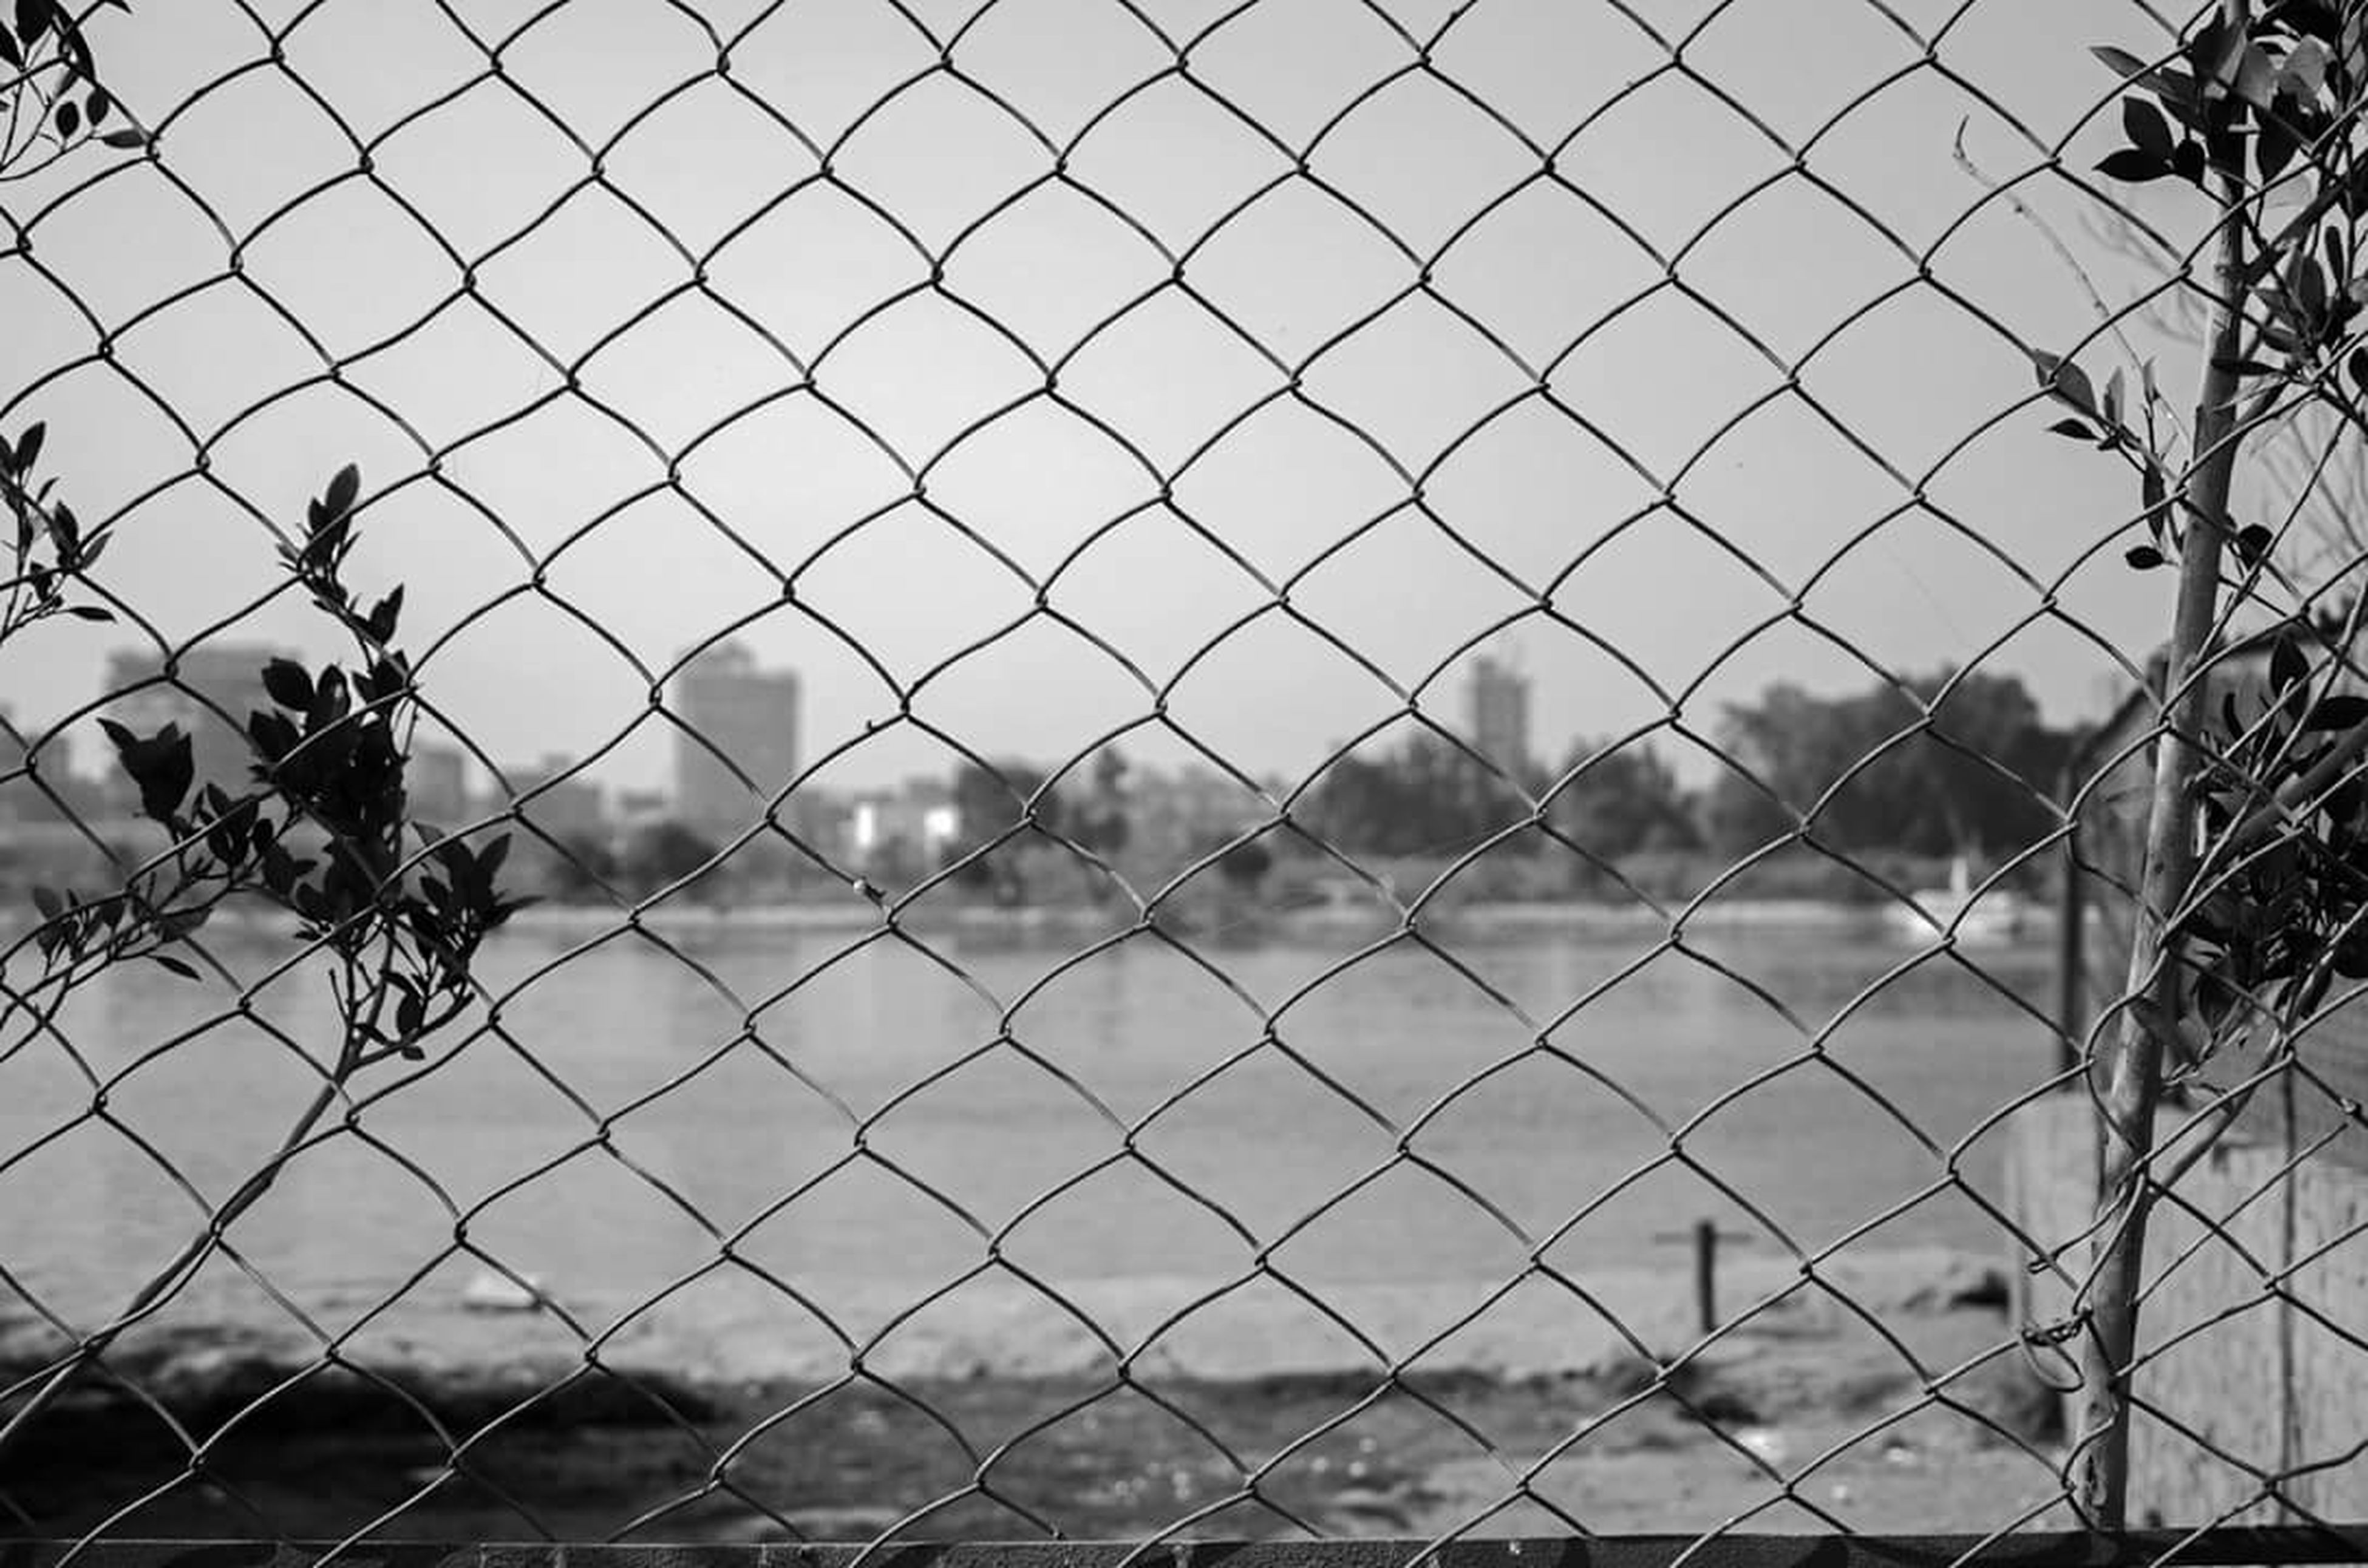 chainlink fence, fence, protection, safety, security, metal, focus on foreground, grass, field, sky, barbed wire, landscape, pattern, day, outdoors, close-up, no people, nature, full frame, tree